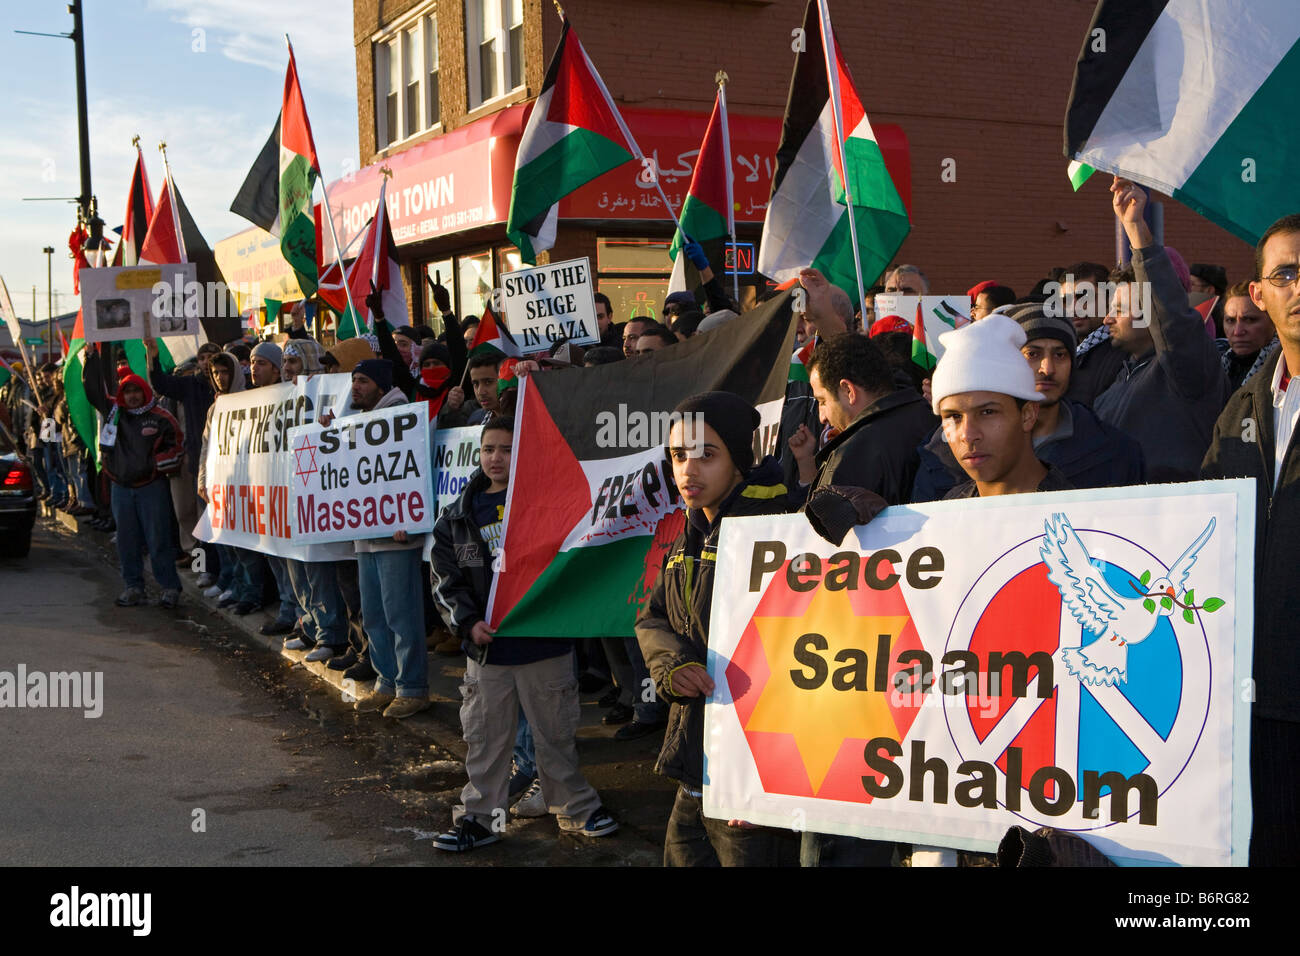 Arab-Americans Protest Israel's Attack on Gaza - Stock Image